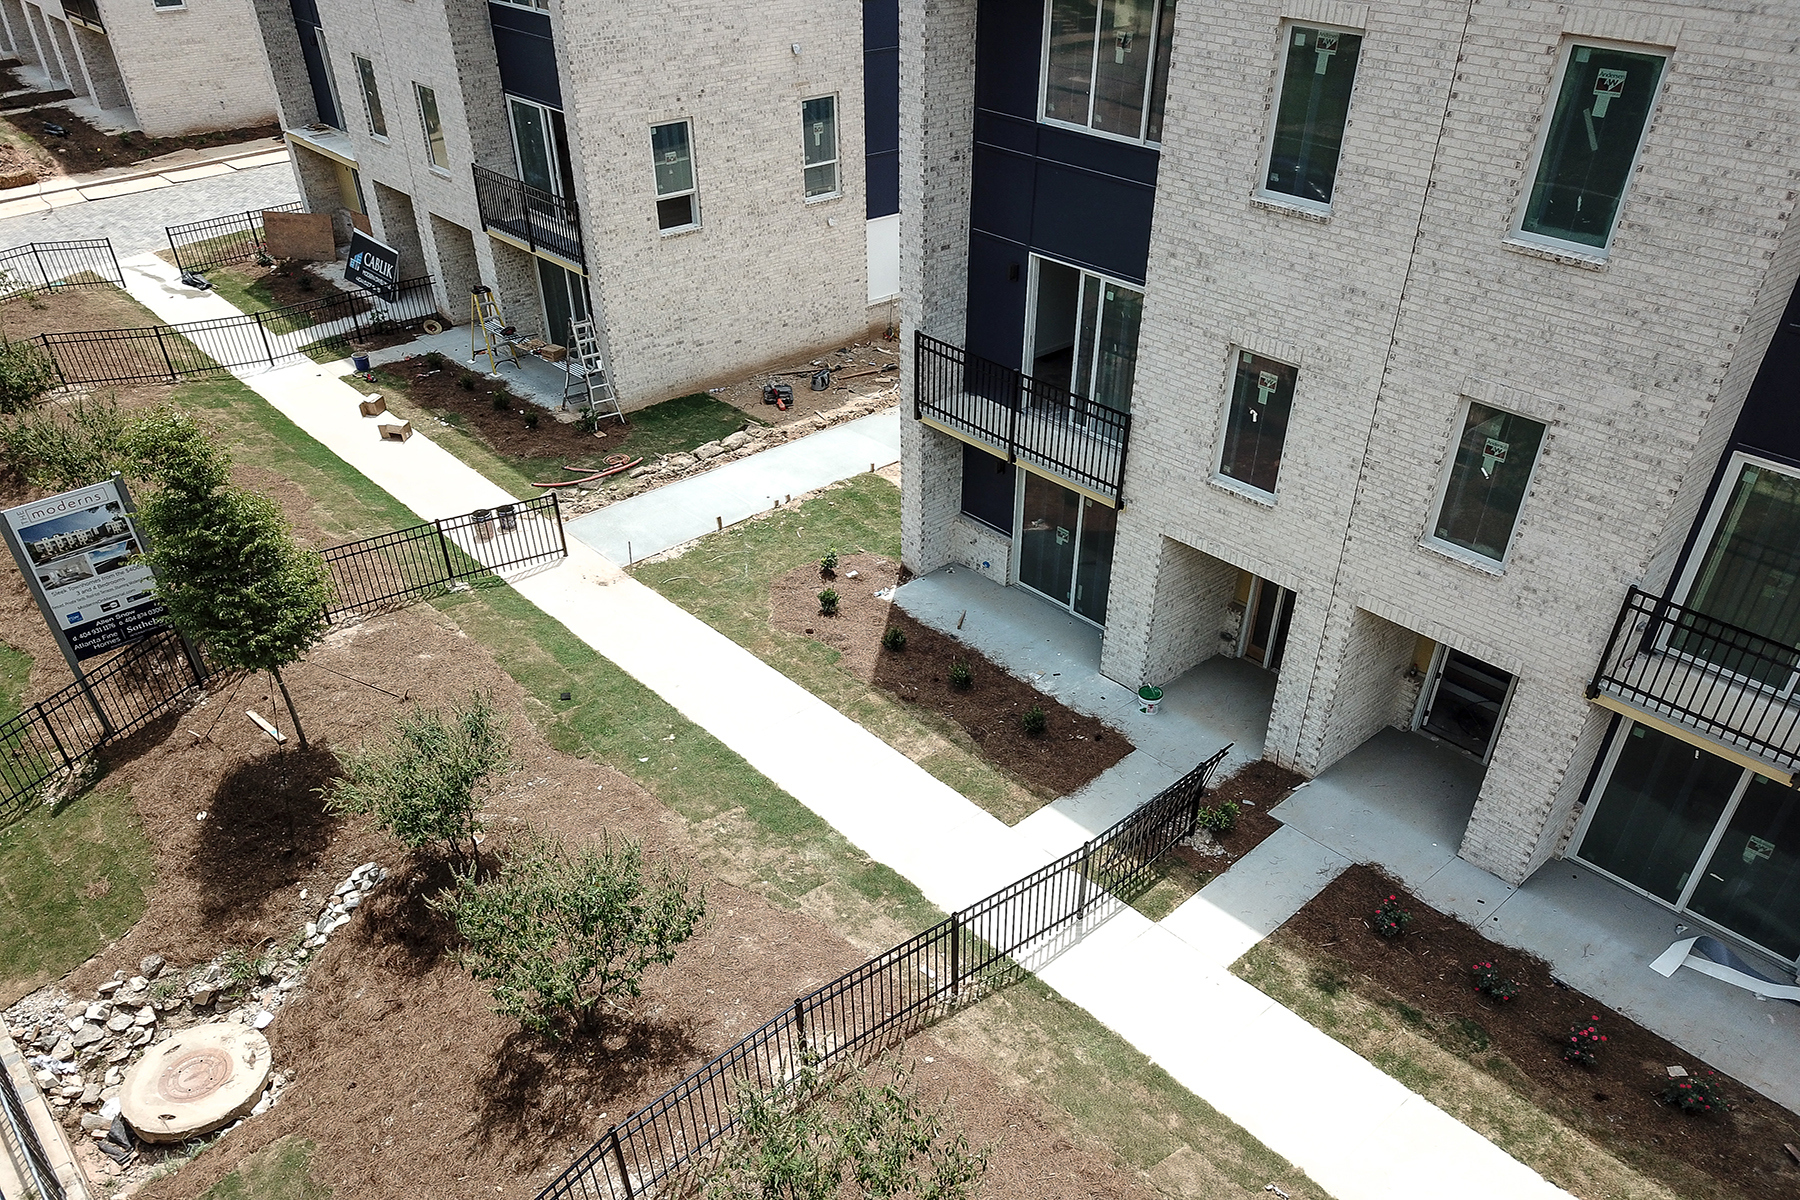 Additional photo for property listing at 62 Modern and Innovative Townhomes Featuring Rooftop Decks 2029 Memorial Drive #2 Atlanta, ジョージア 30317 アメリカ合衆国